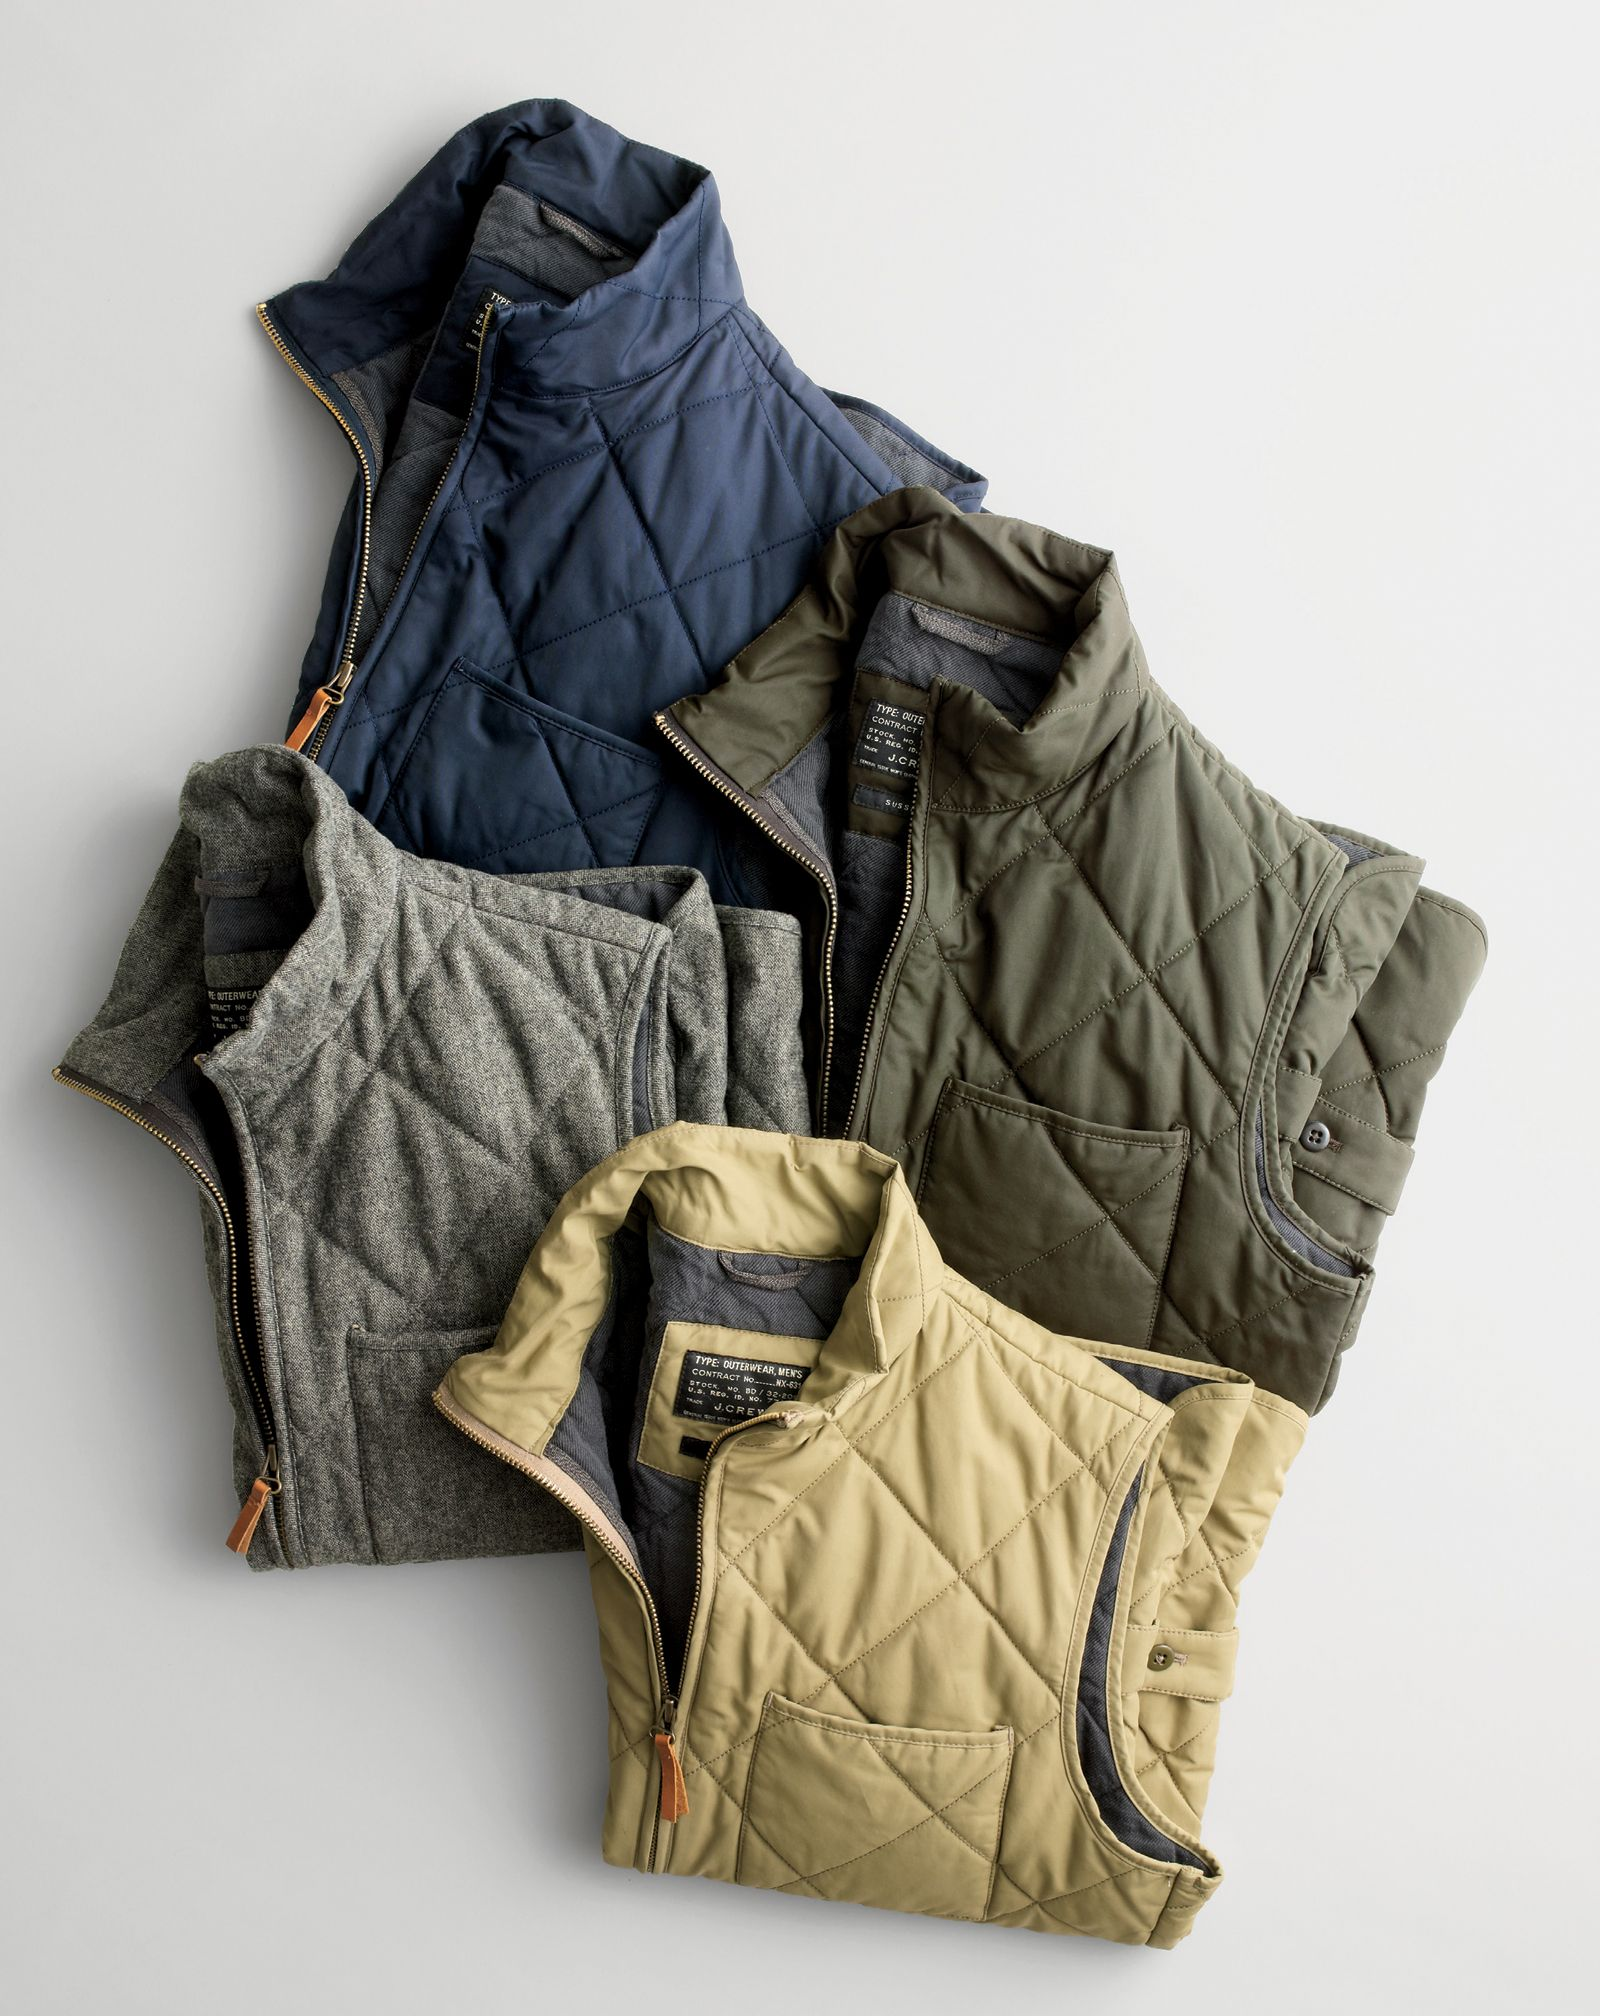 7adc80d1ca75 Our best-selling J.Crew men s Sussex quilted vests. Our Primaloft®-filled  vests are a team favorite.